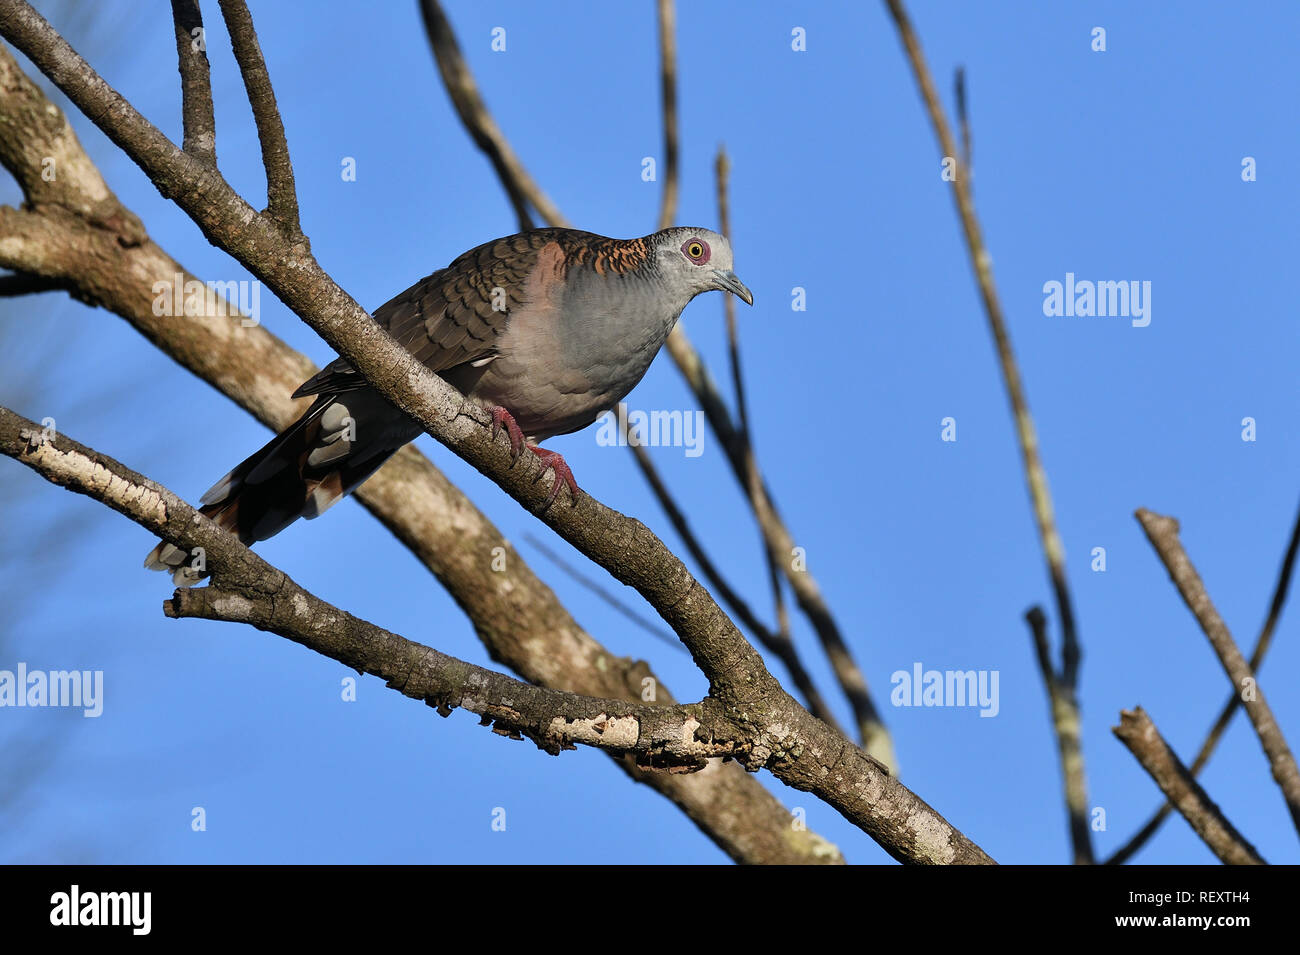 An Australian, Queensland Bar-shouldered Dove ( Geopelia humeralis ) stooping, perched on a branch looking to Camera - Stock Image